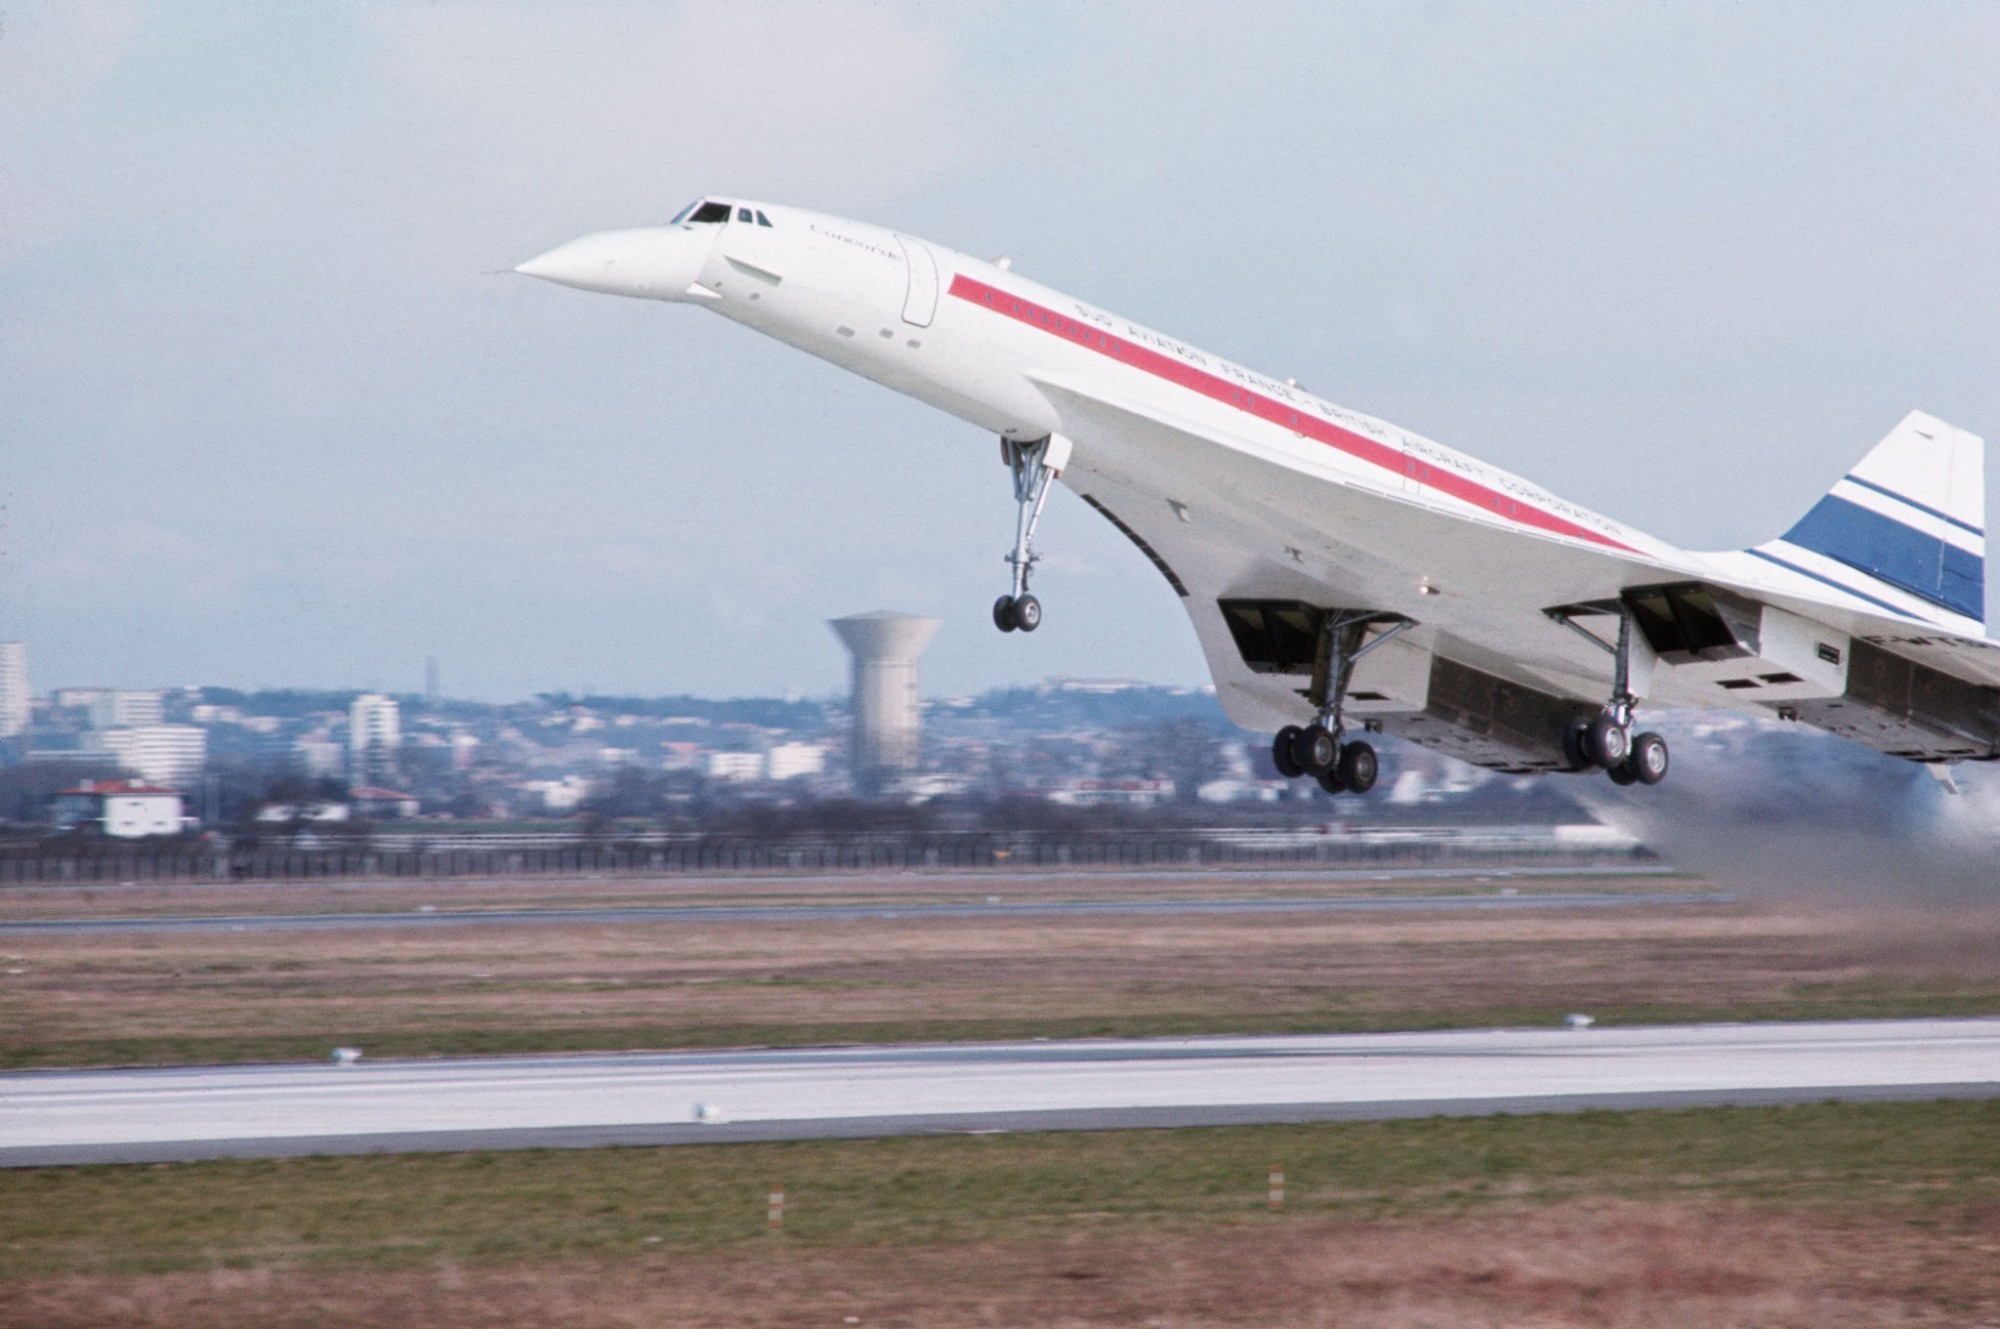 1969 Concorde takes off from a runway for its first flight by Marc Garanger